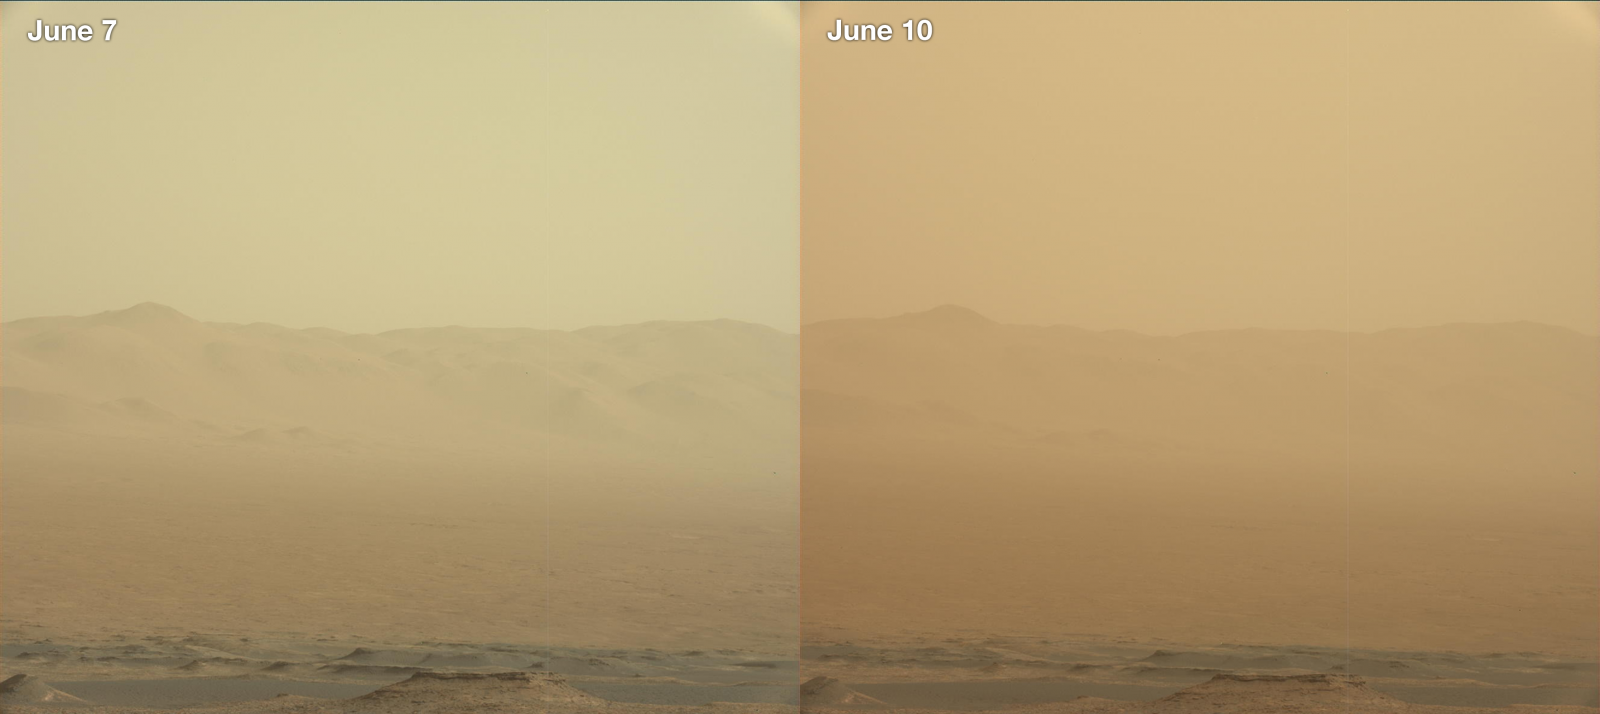 These two views from NASA's Curiosity rover, acquired specifically to measure the amount of dust inside Gale Crater, show that dust has increased over three days from a major Martian dust storm. The left-hand image shows a view of the east-northeast rim of Gale Crater on June 7, 2018 (Sol 2074); the right-hand image shows a view of the same feature on June 10, 2018 (Sol 2077). The images were taken by the rover's Mastcam. Caption and Image Credit: NASA/JPL-Caltech/MSSS